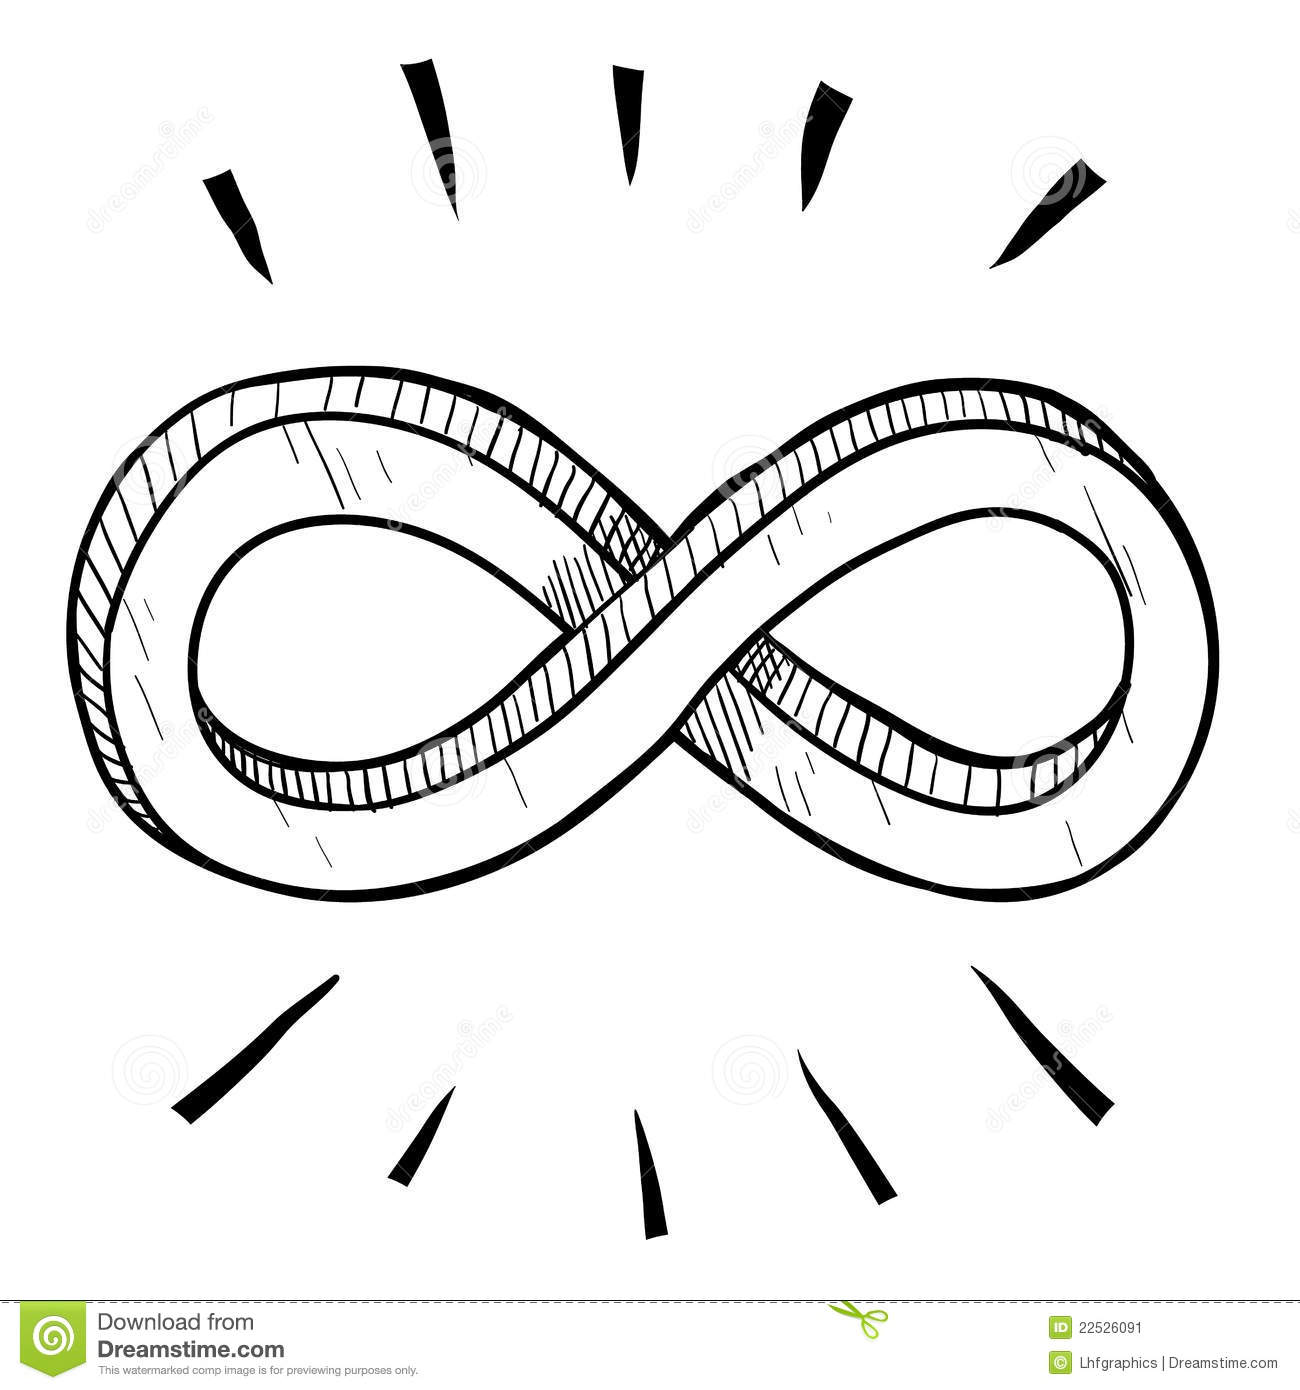 Infinity symbol sketch stock vector illustration of endless infinity symbol sketch buycottarizona